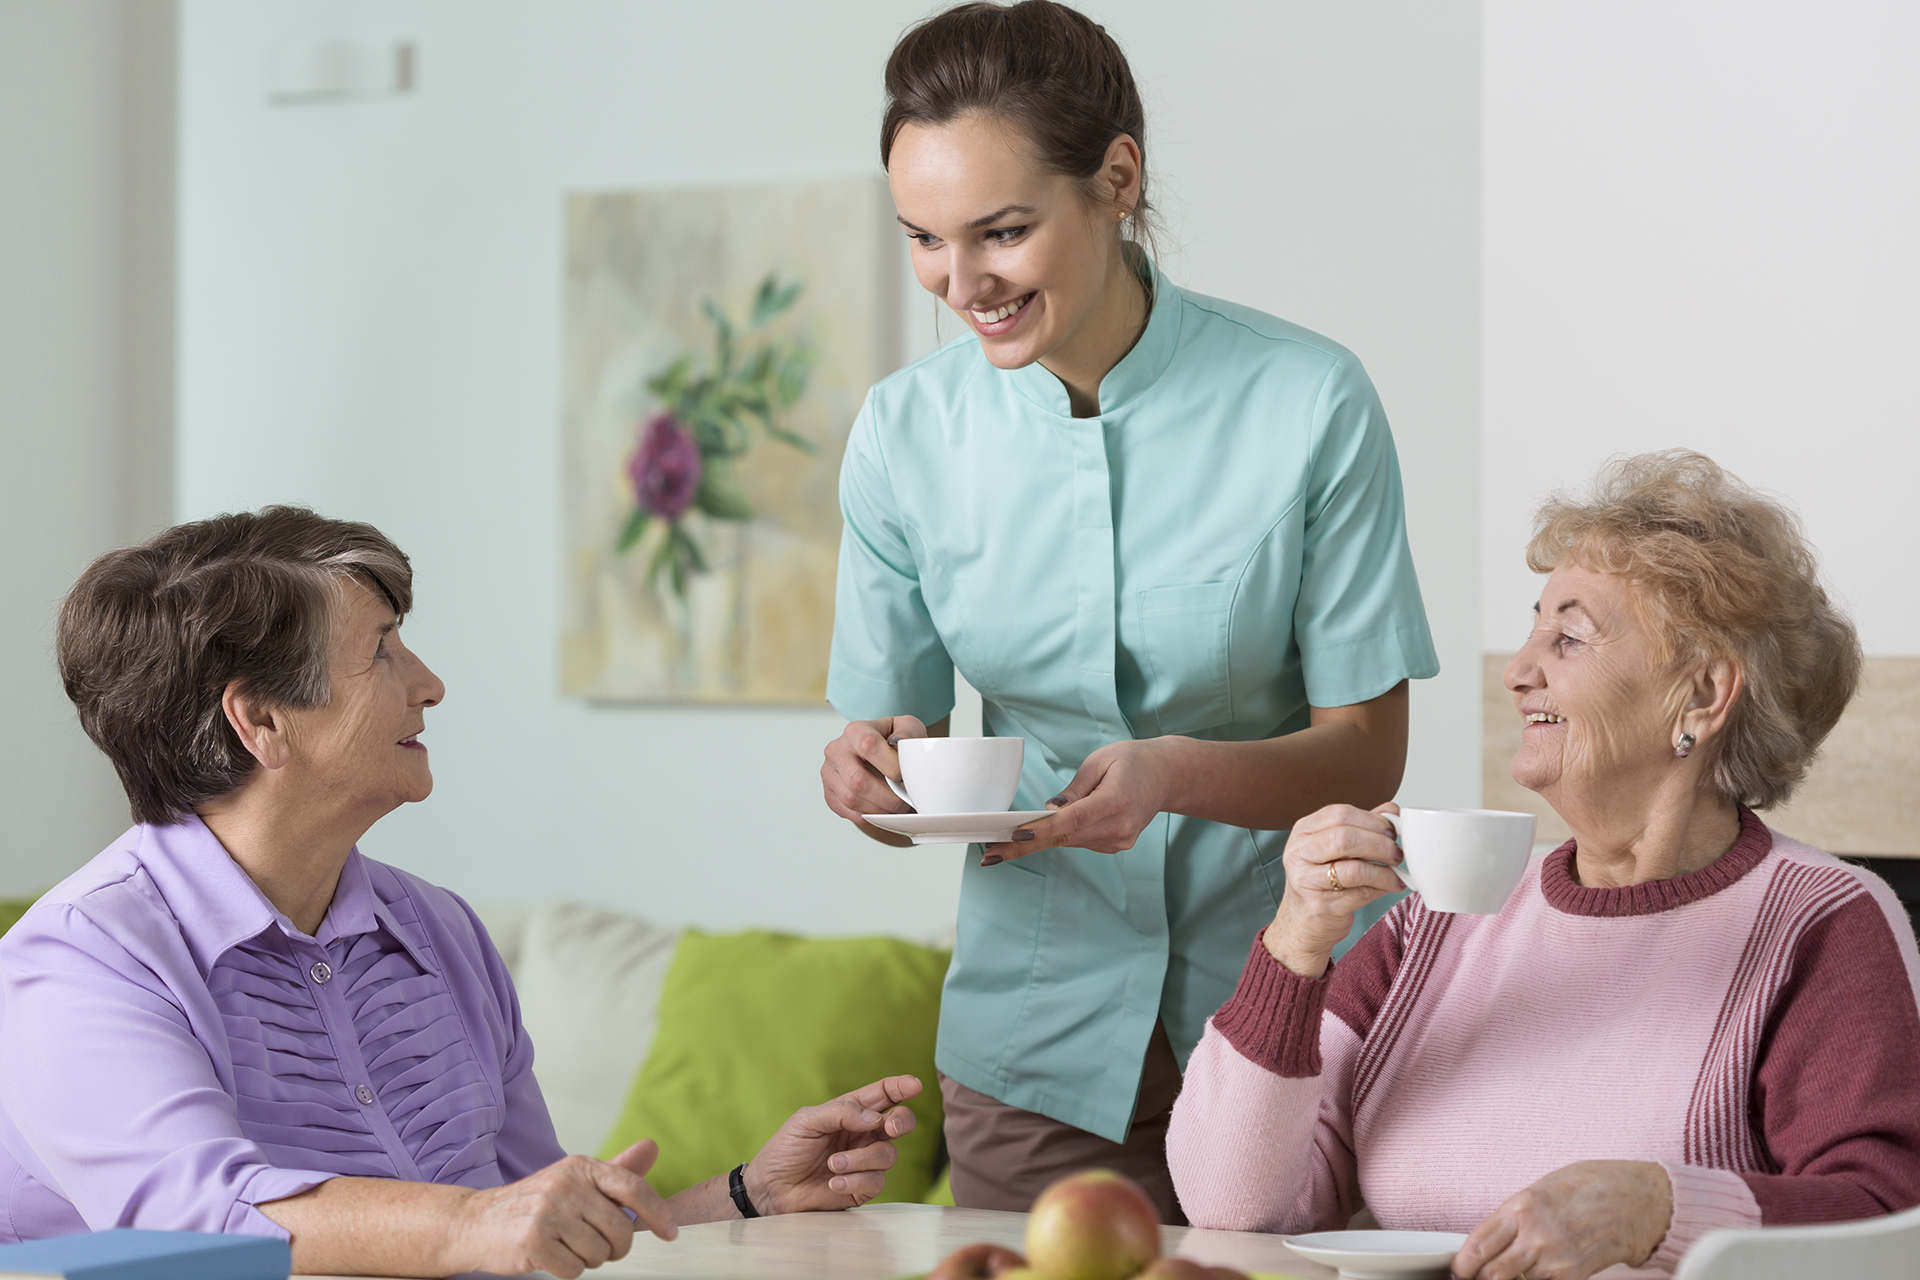 Staff helping seniors with tea